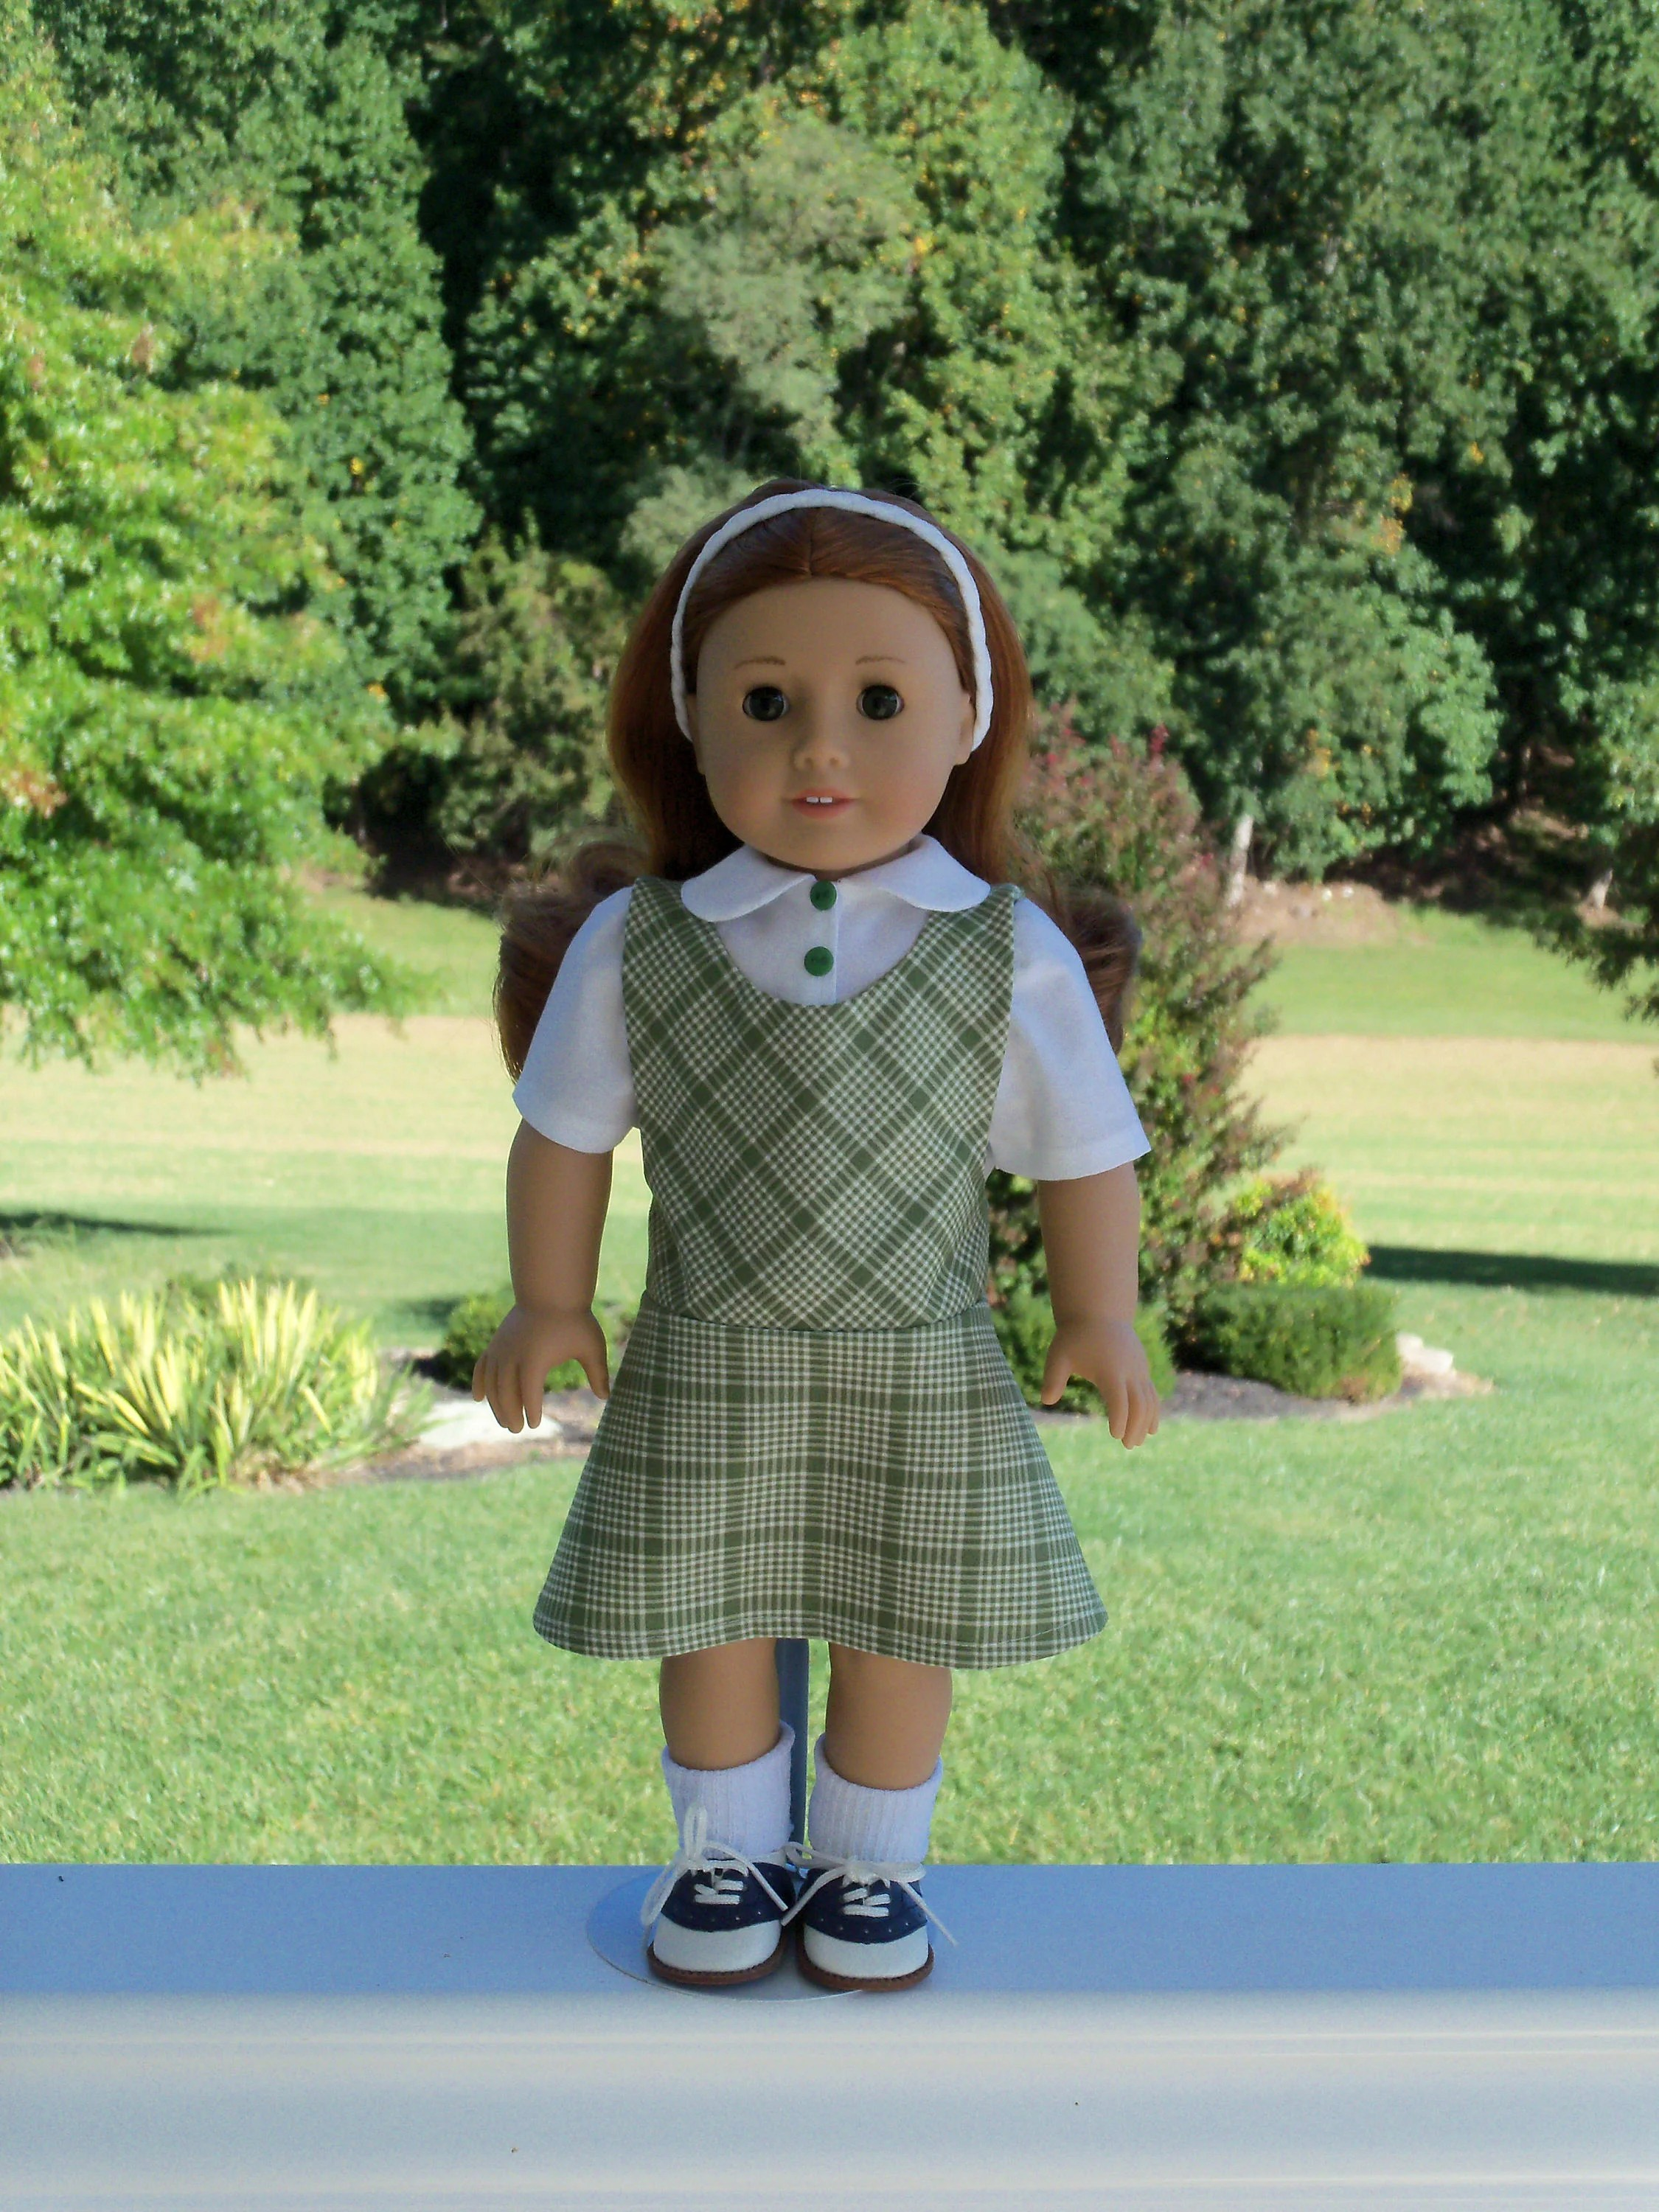 Sale 18 Size School Jumper And Blouse Clothes For 18